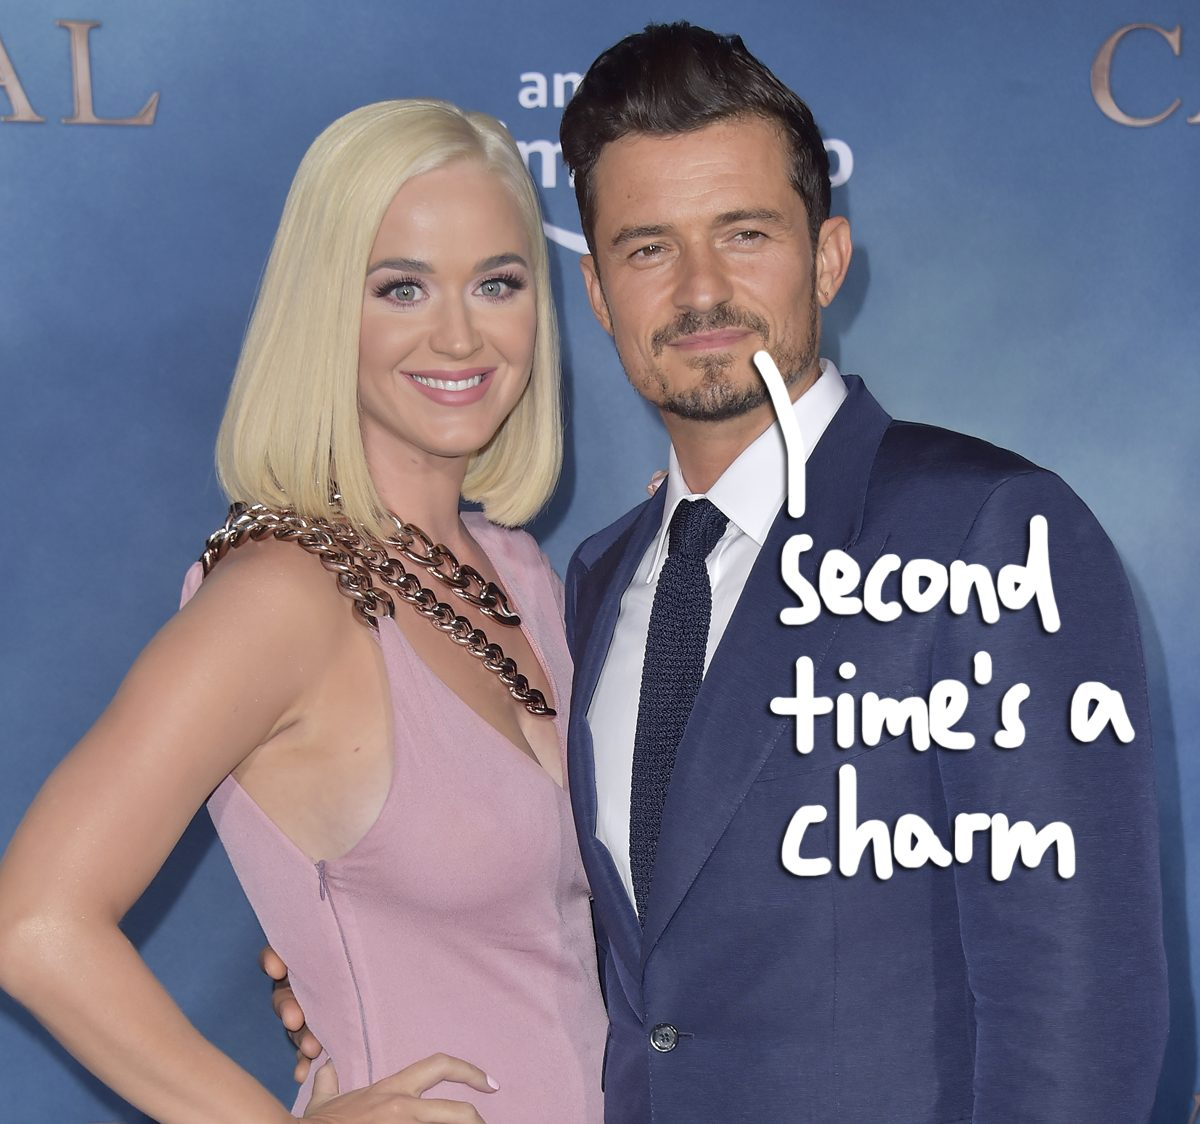 Orlando Bloom Explains How His Divorce From Miranda Kerr Prepared Him For Marriage With Katy Perry!